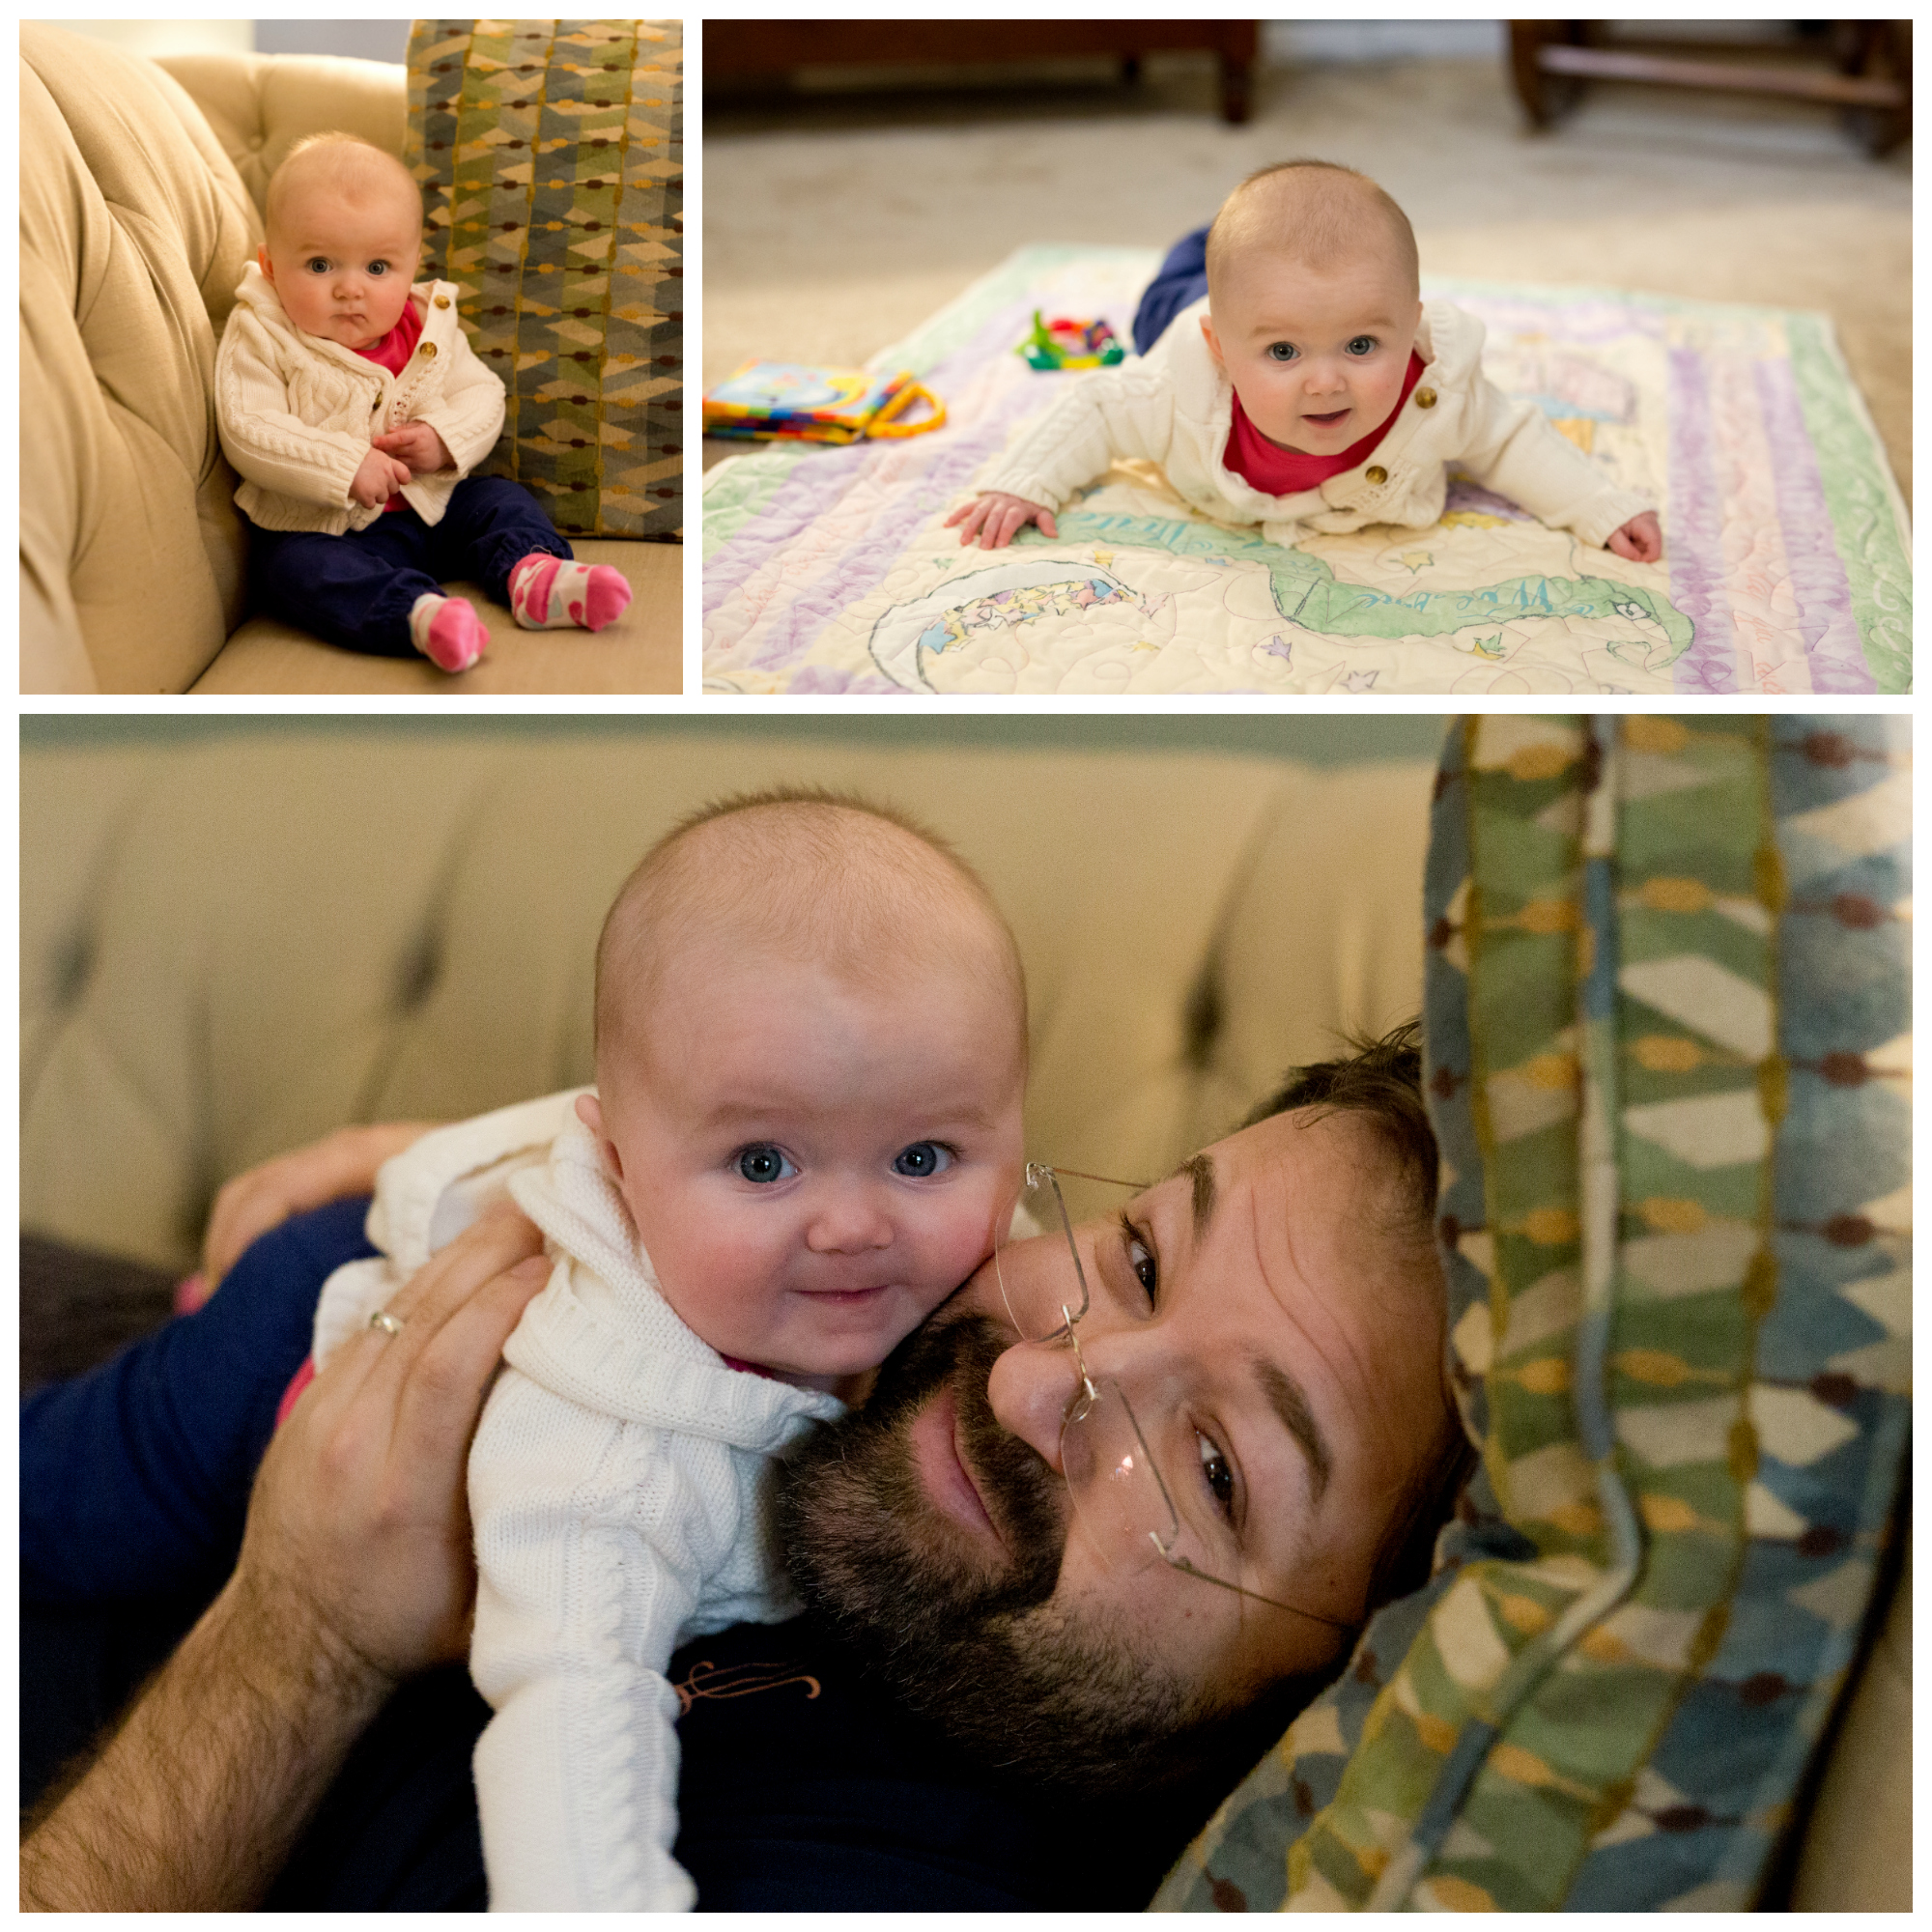 baby girl with daddy on couch